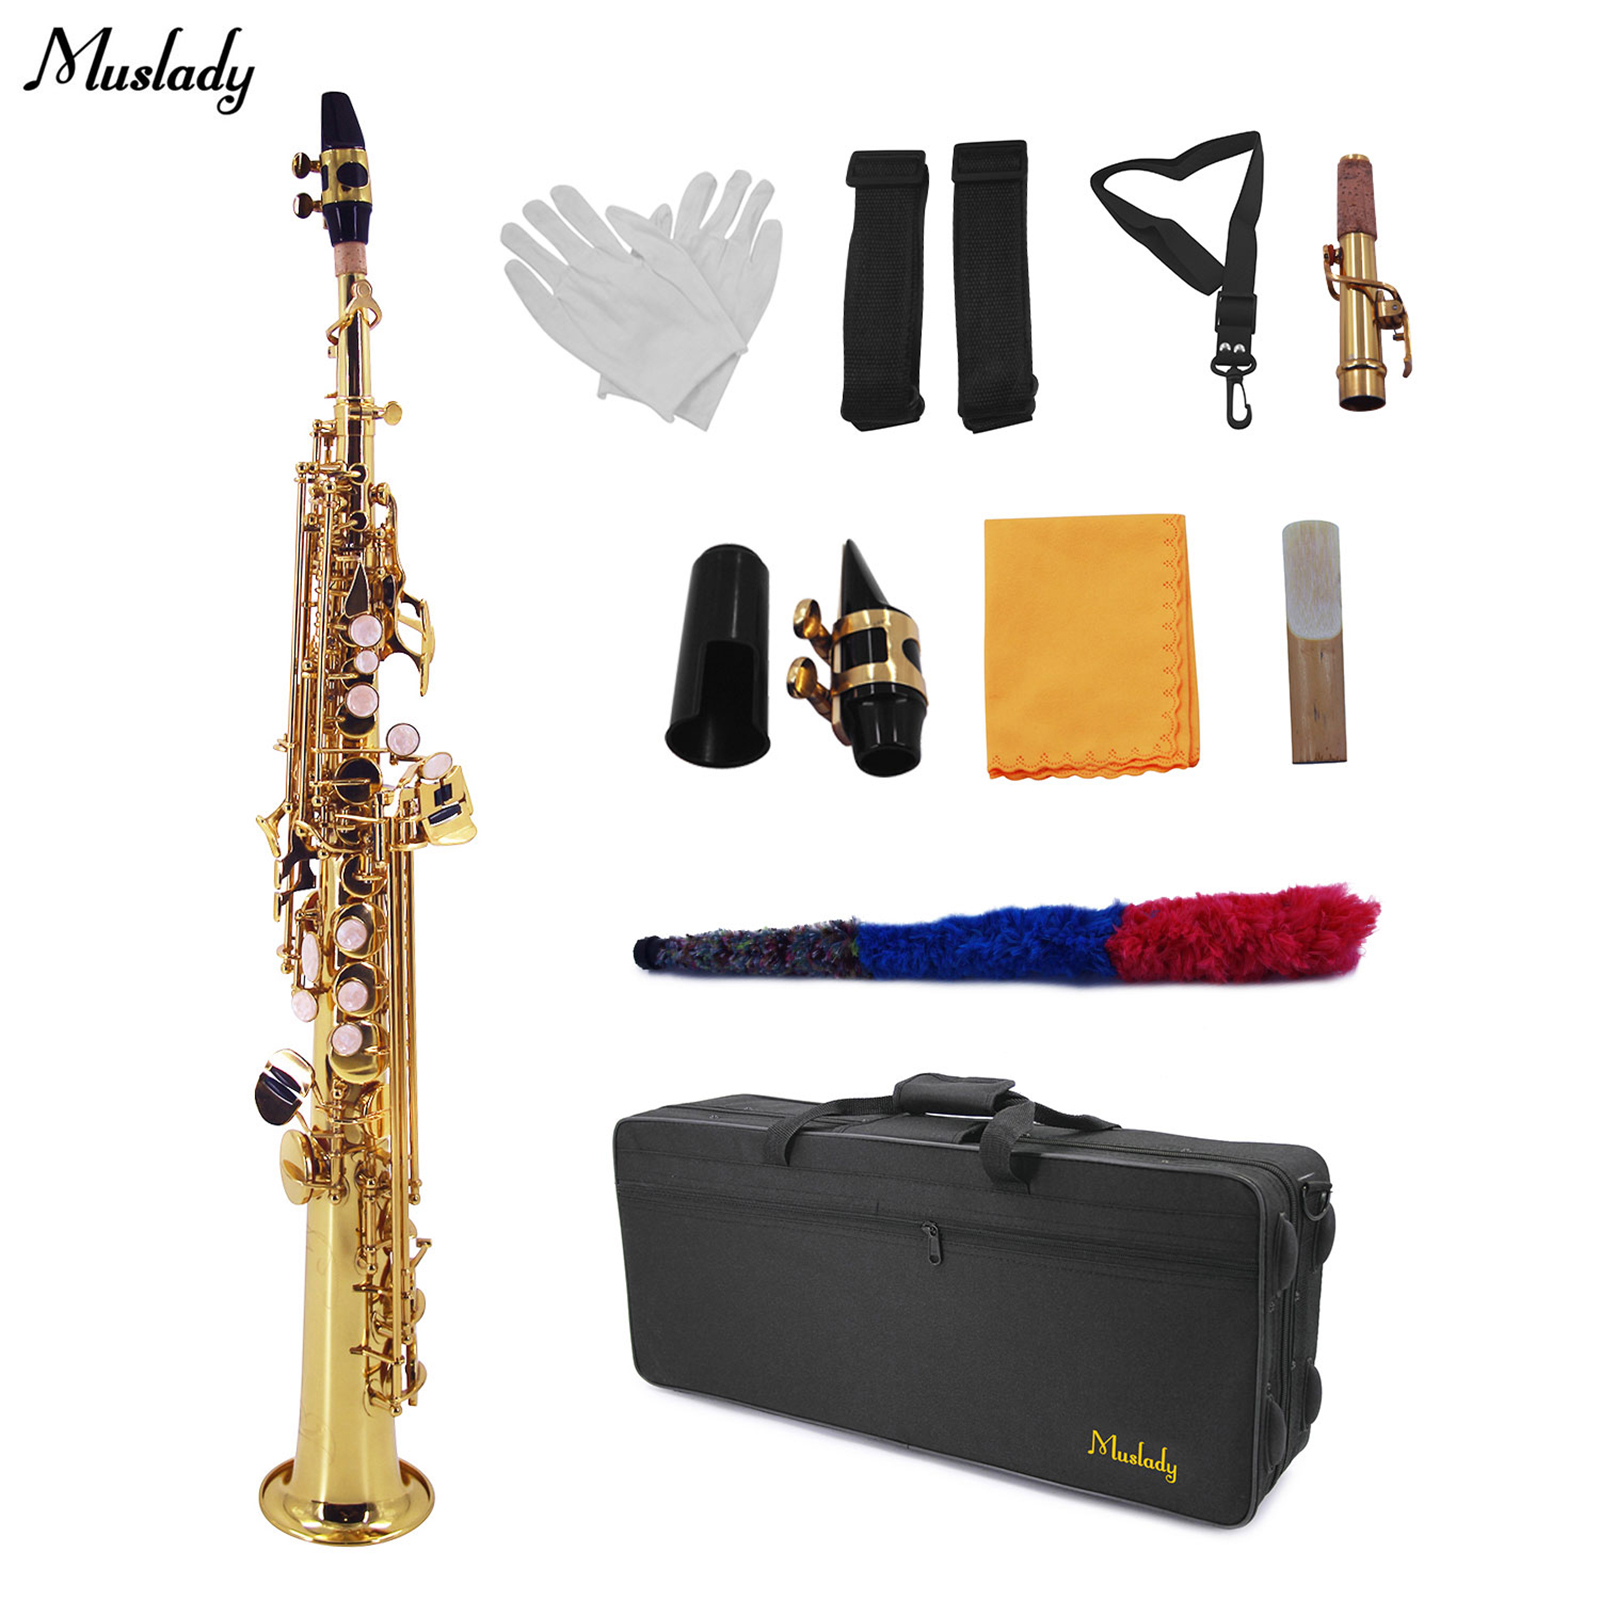 Muslady Straight Bb Soprano Saxophone Brass Lacquered Gold Woodwind Instrument with Carrying Case Reed Cleaning Brush Cloth